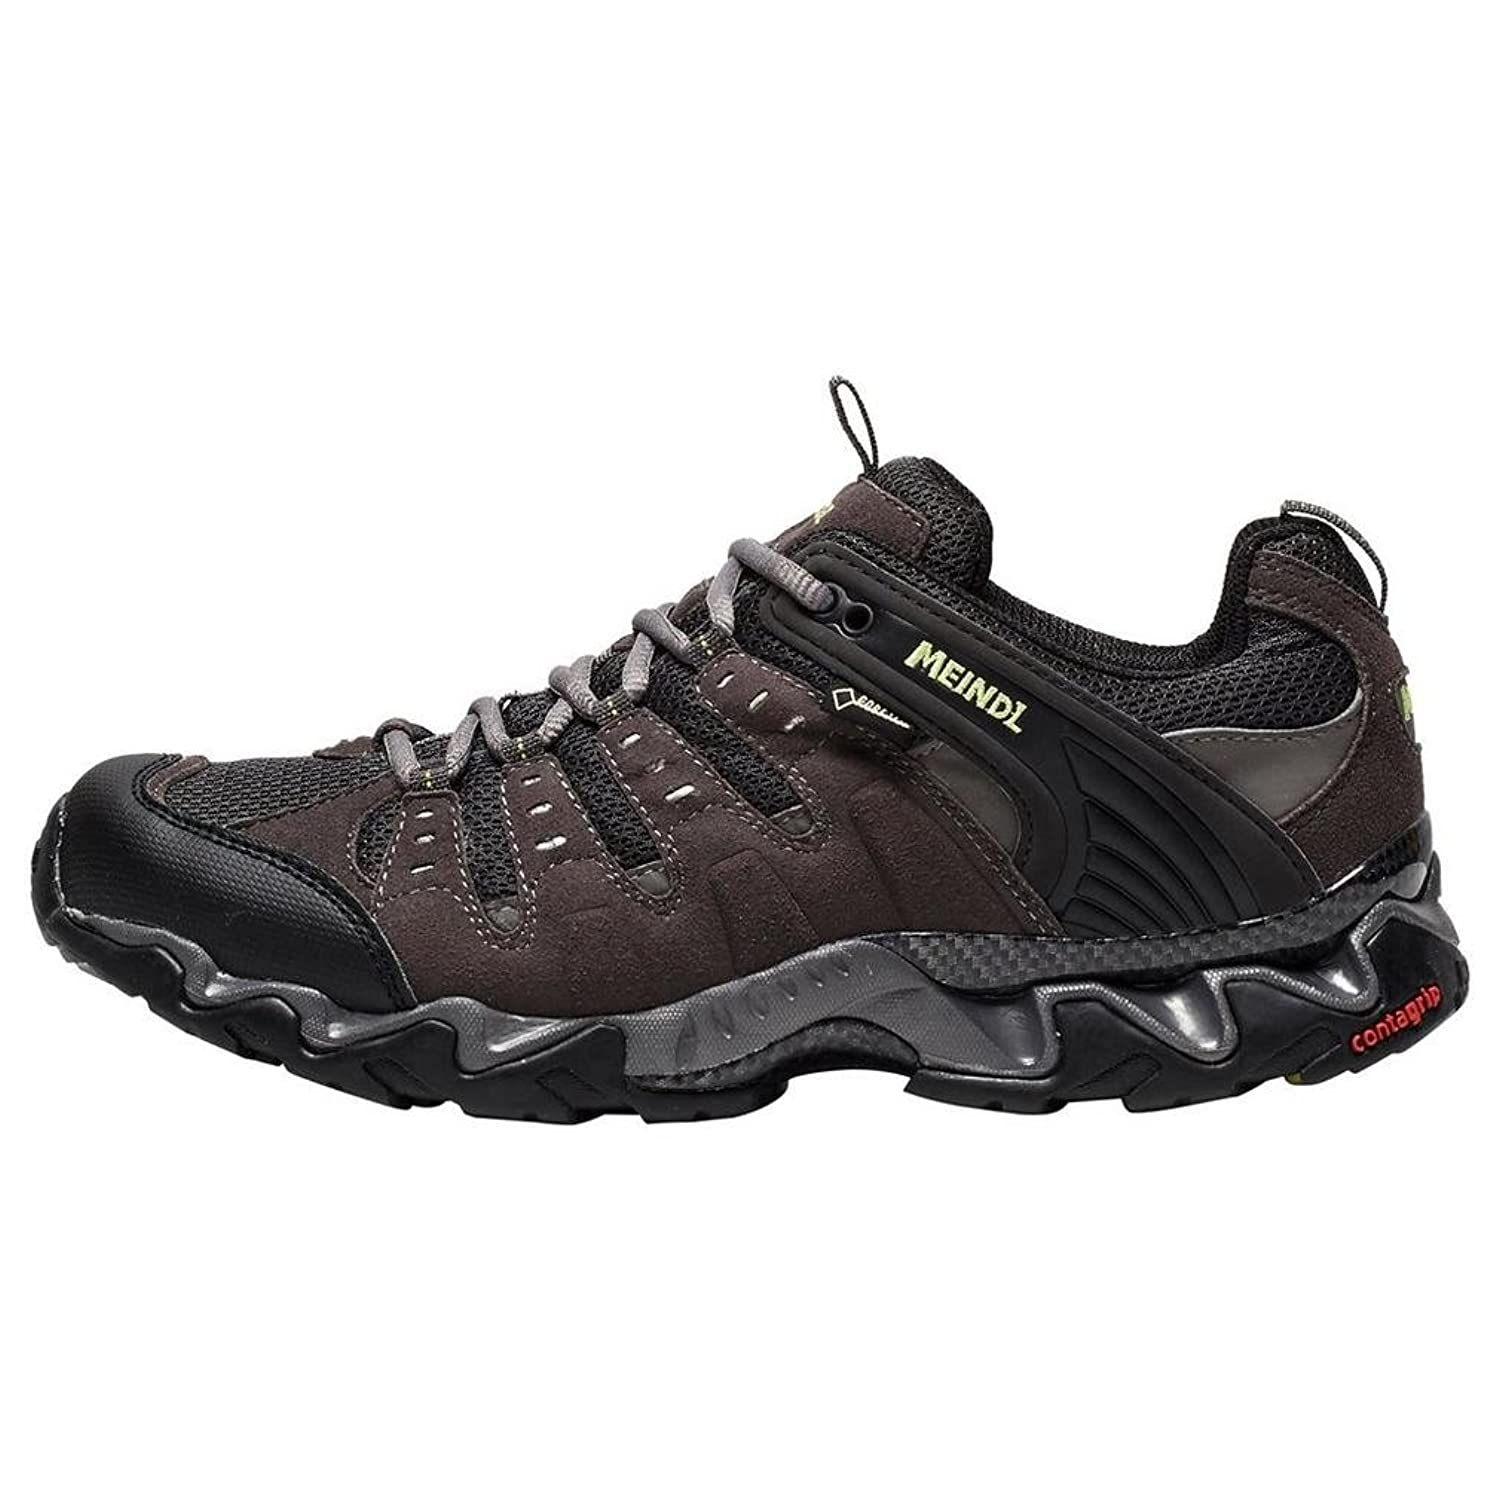 Meindl Men S Philadelphia Gore Tex Walking Shoes Amazon Co Uk